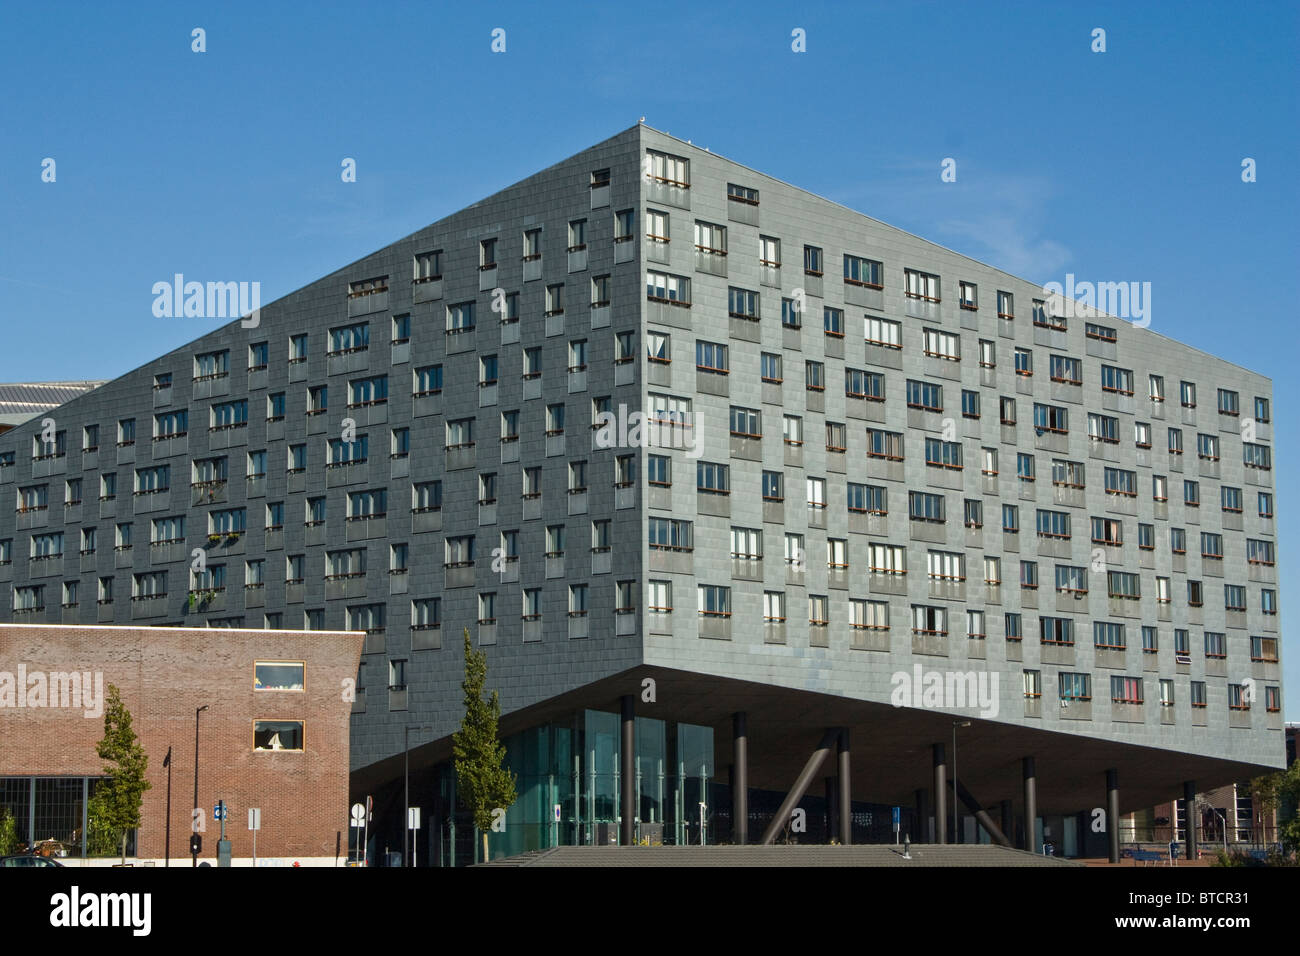 Sfinx or Whale by Frits van Dongen, modern architecture in Amsterdam, Sporenburg, Eastern Harbour Docklands, - Stock Image